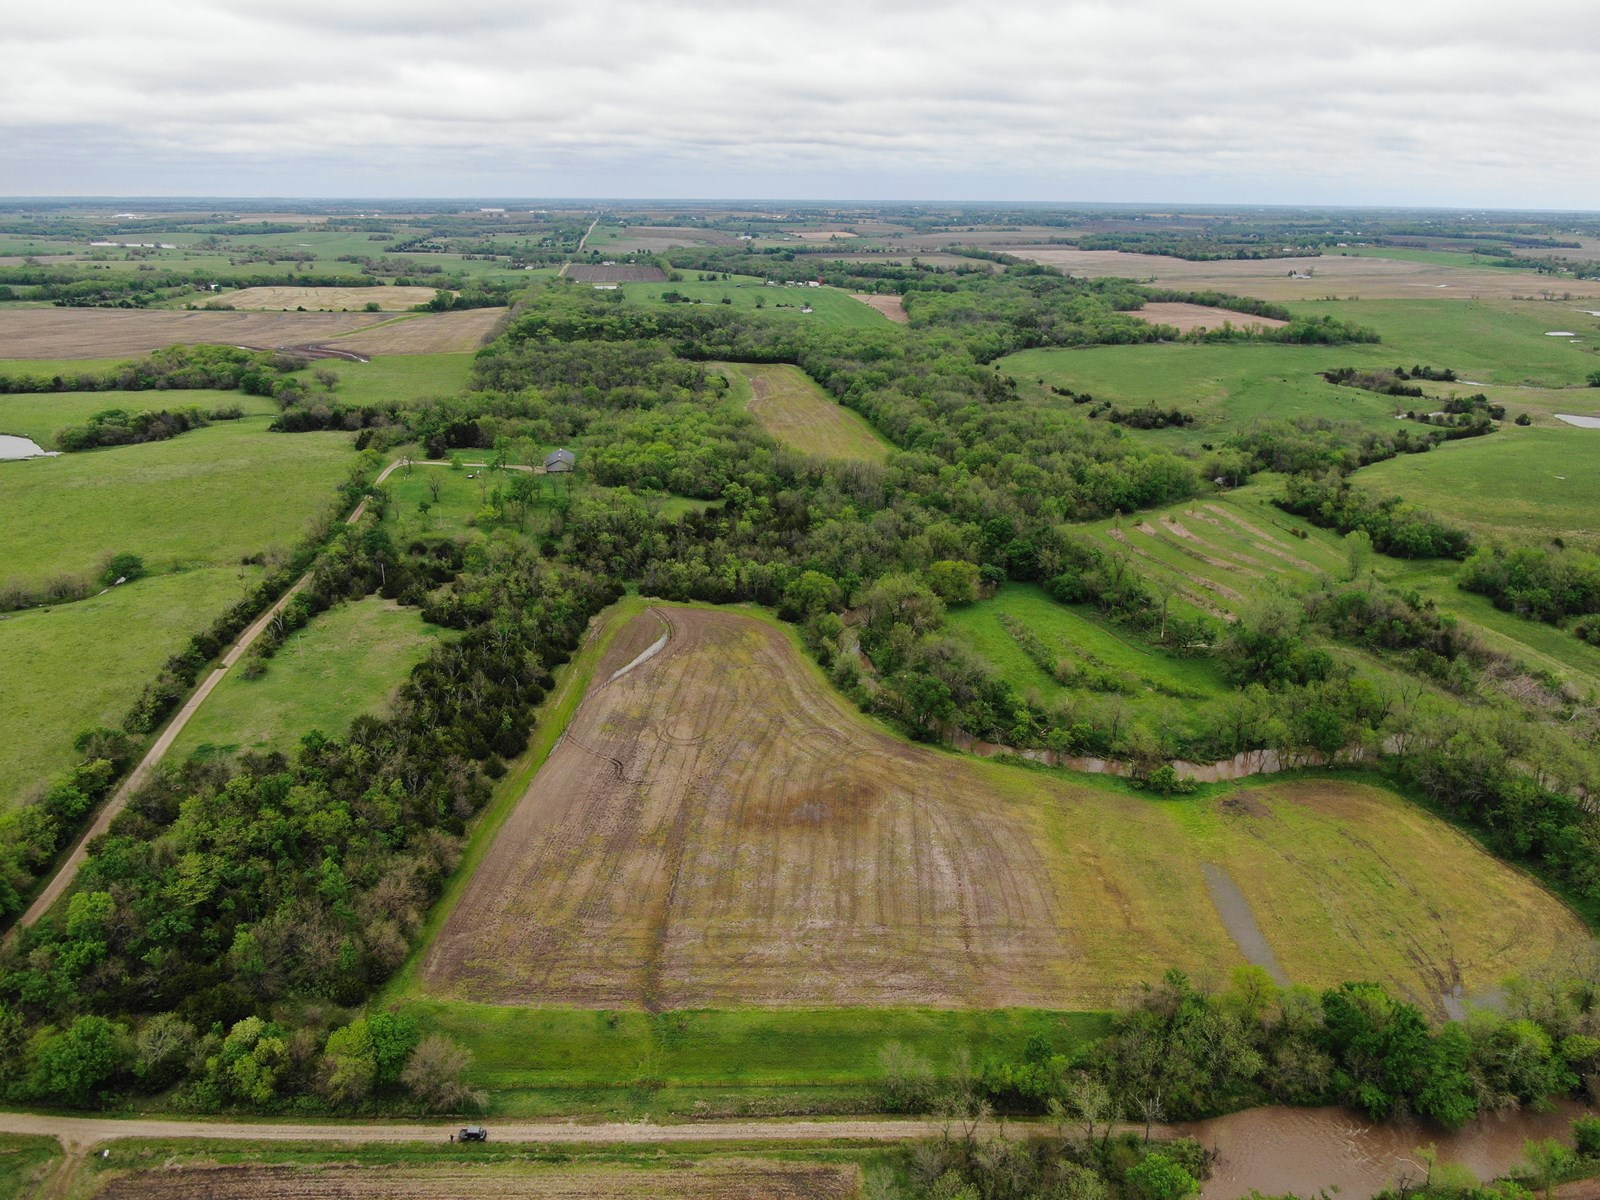 Turn-Key Kansas Hunting Land For Sale with Farming Income